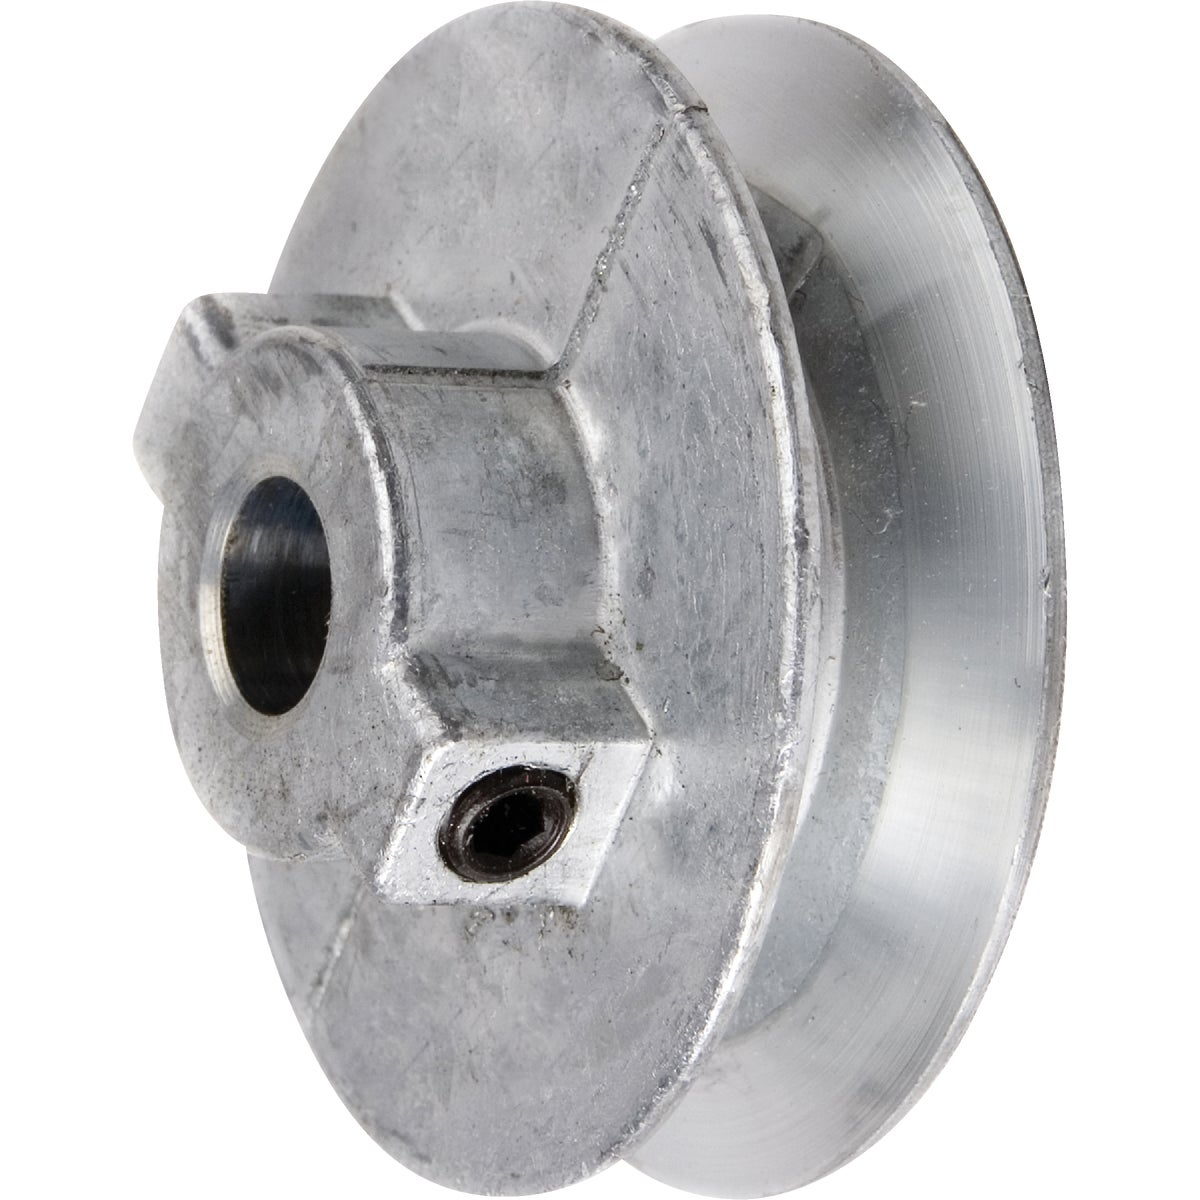 2-1/4X1/2 PULLEY